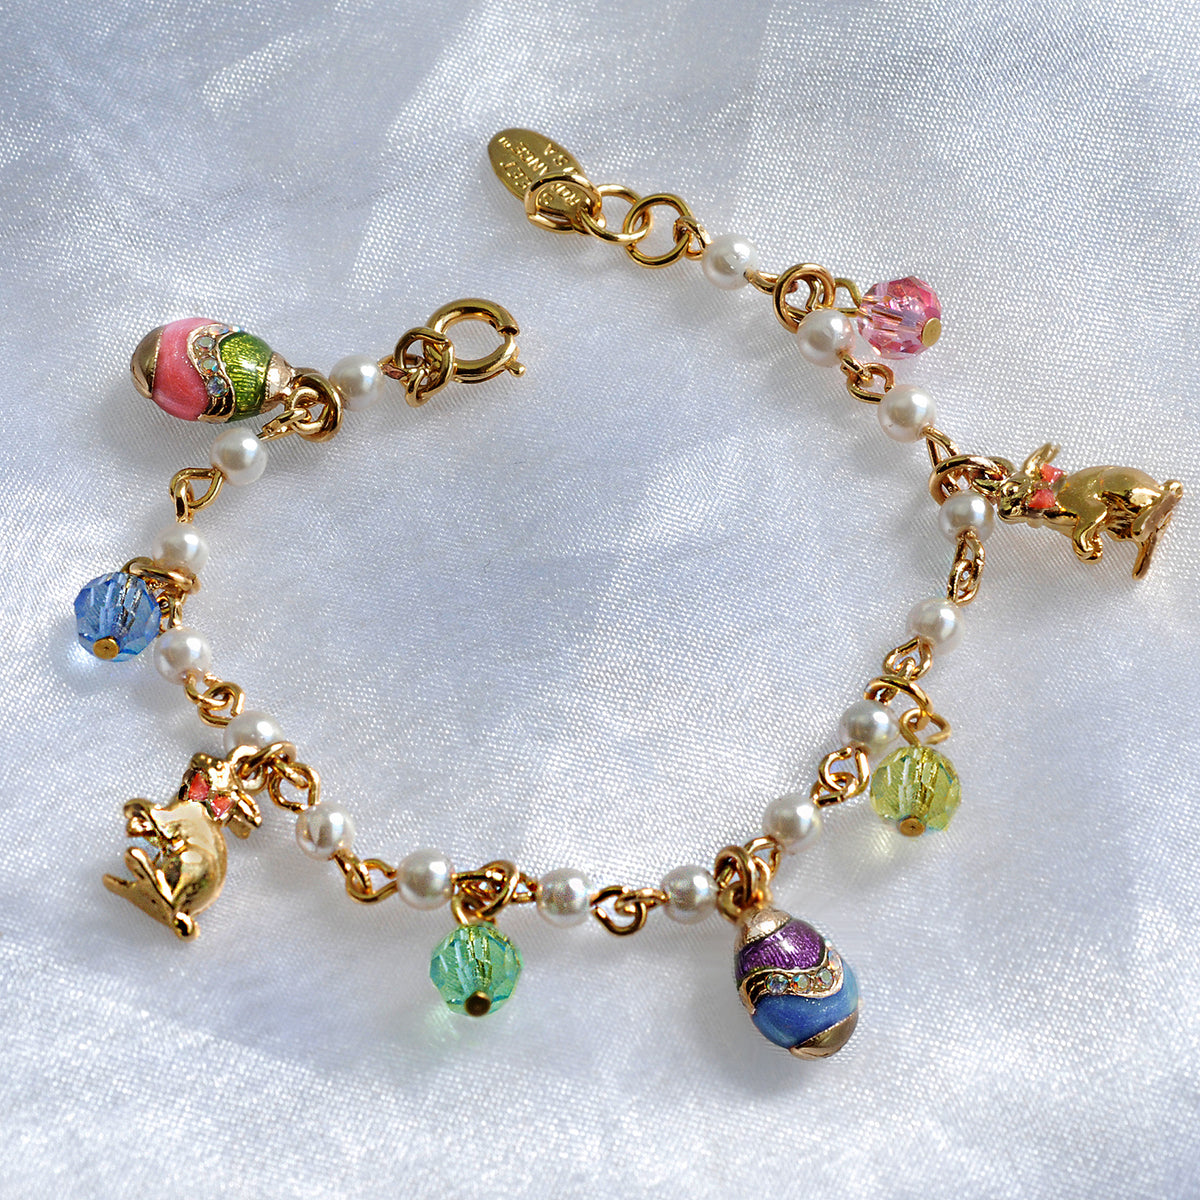 Easter Egg Charm Bracelet BR201 - sweetromanceonlinejewelry